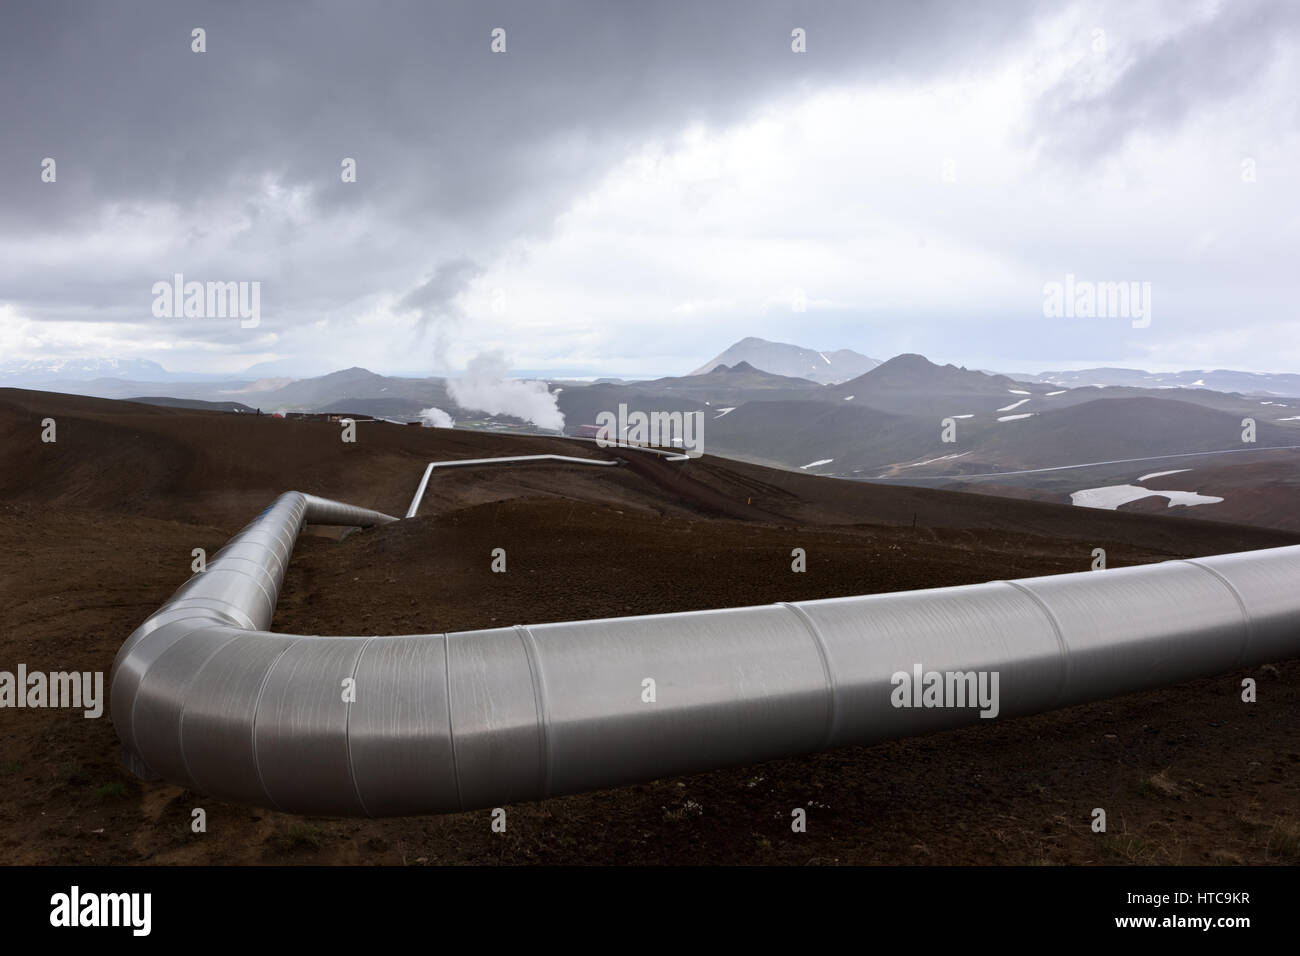 Iceland landscape with pipes in mountains. Geothermal energy in operations. - Stock Image